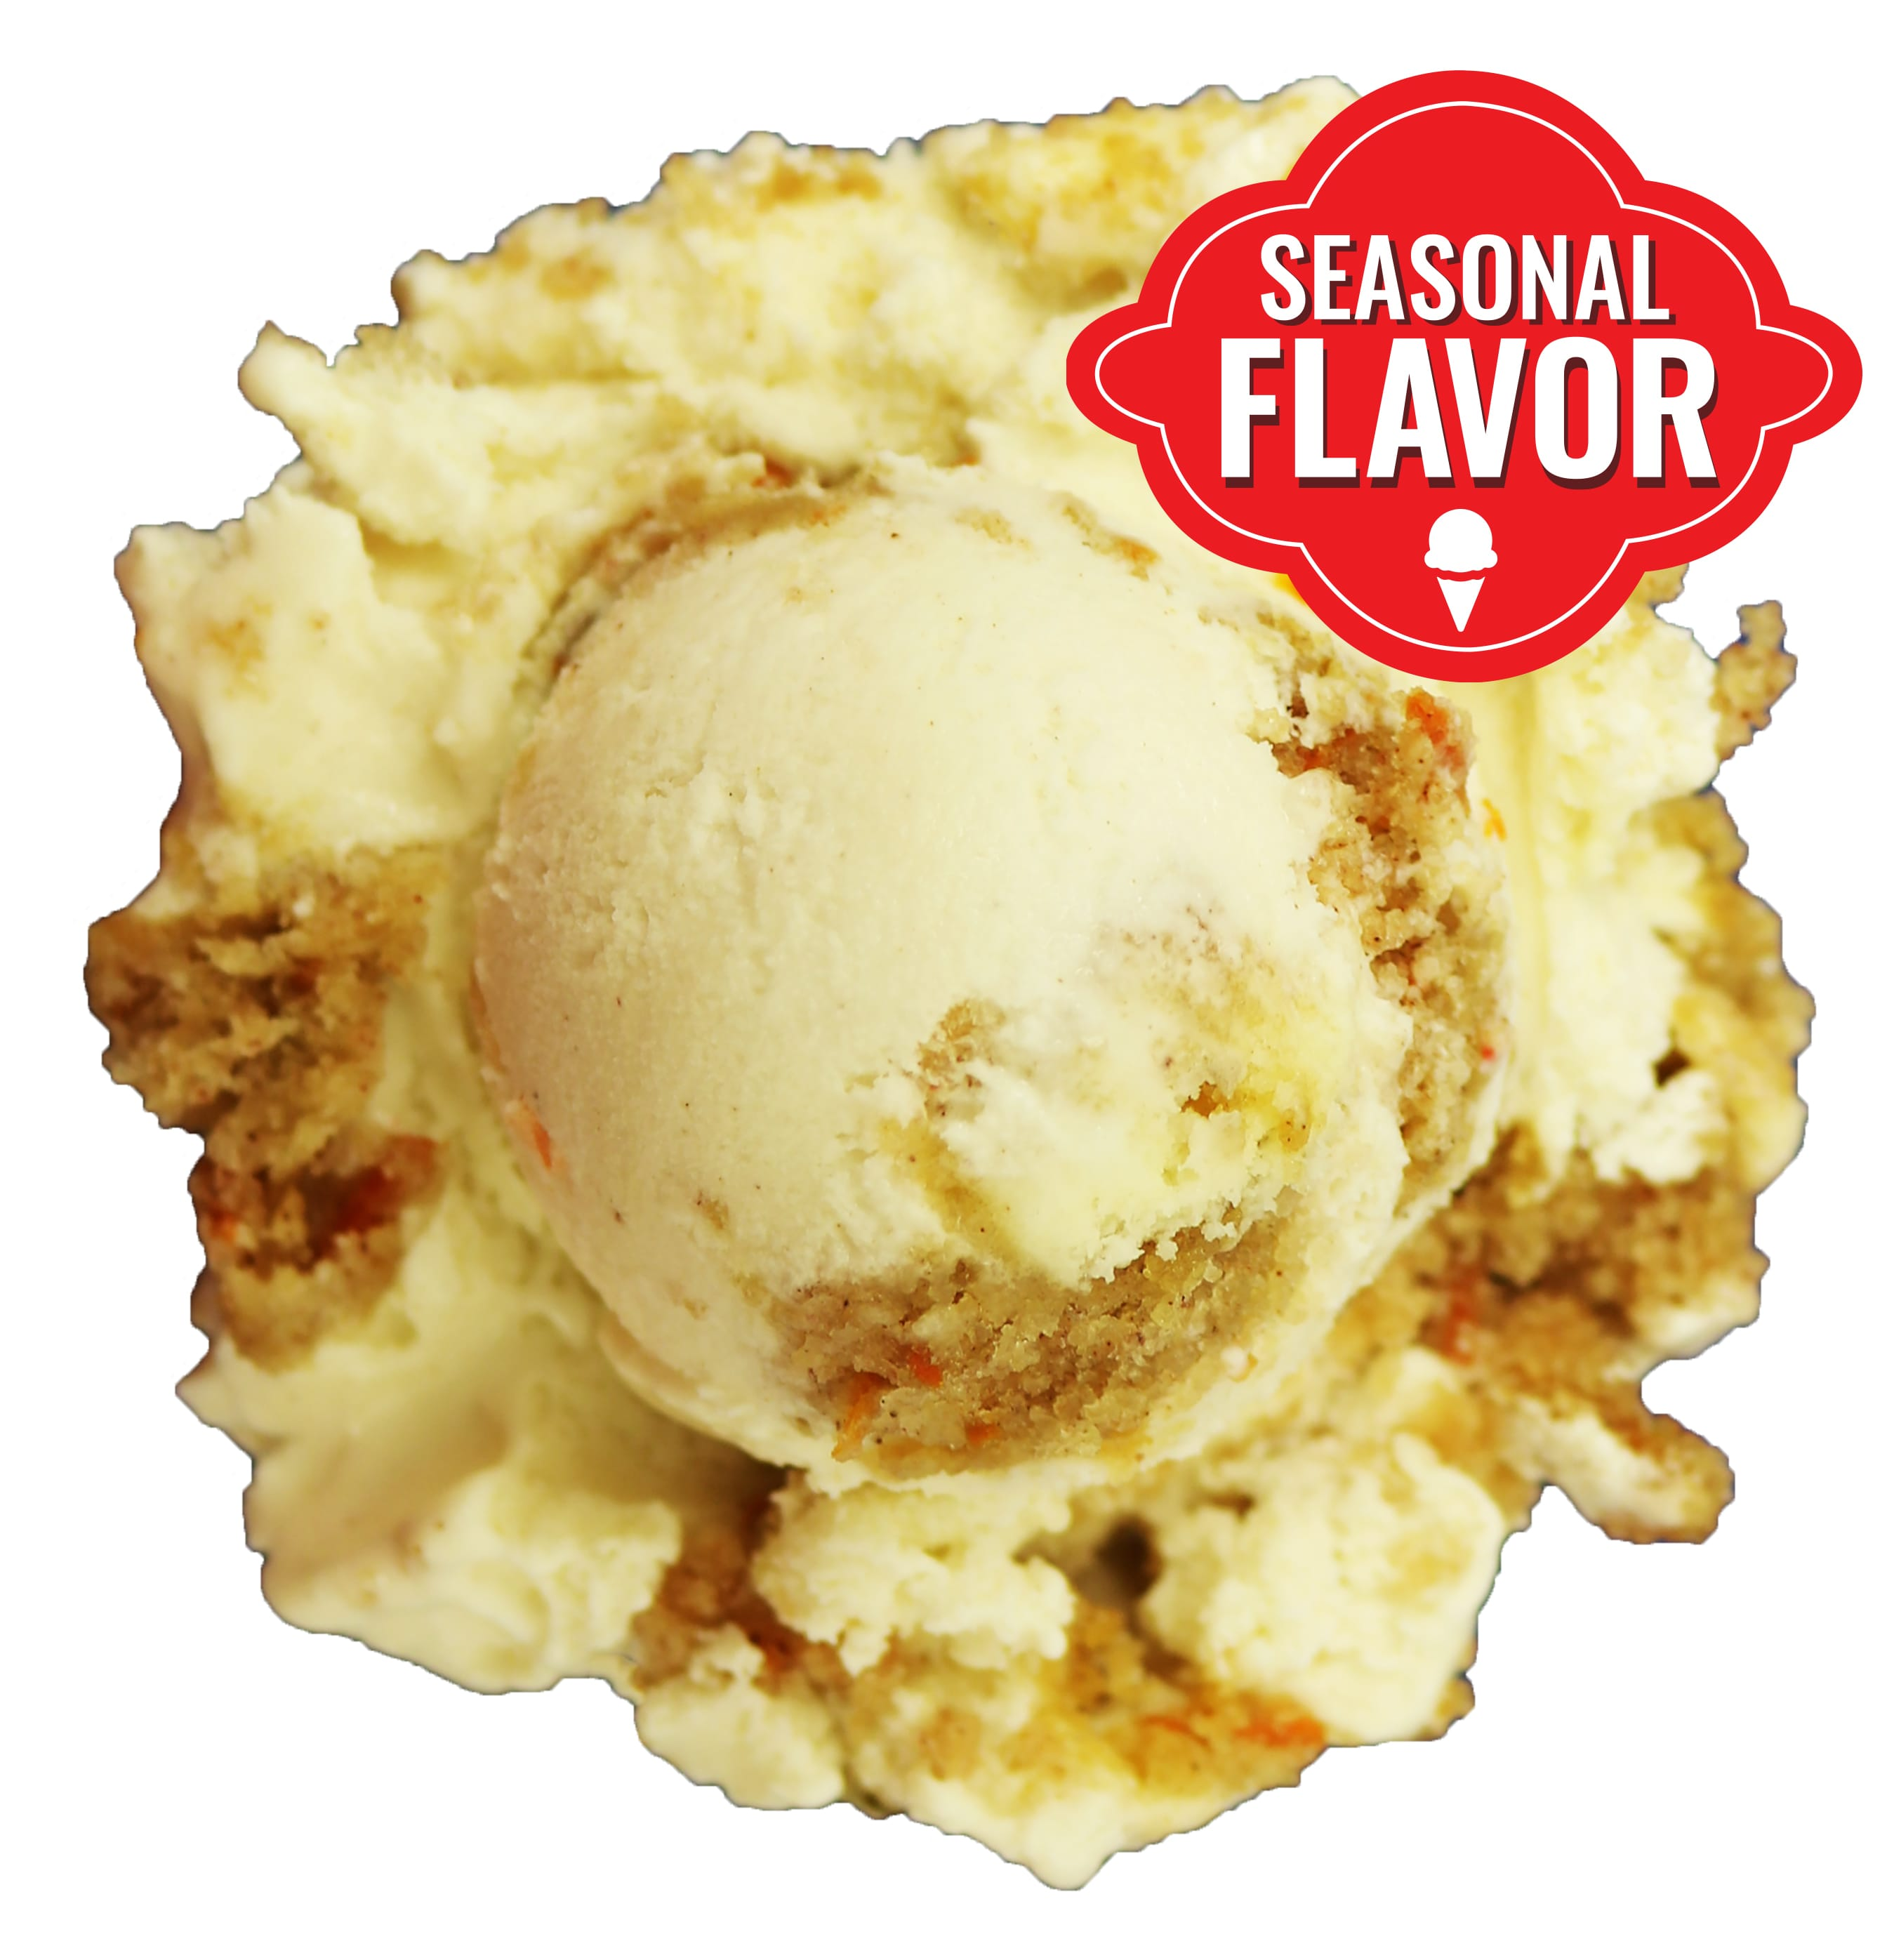 Carrot Cake Light Cinnamon Flavored Ice Cream